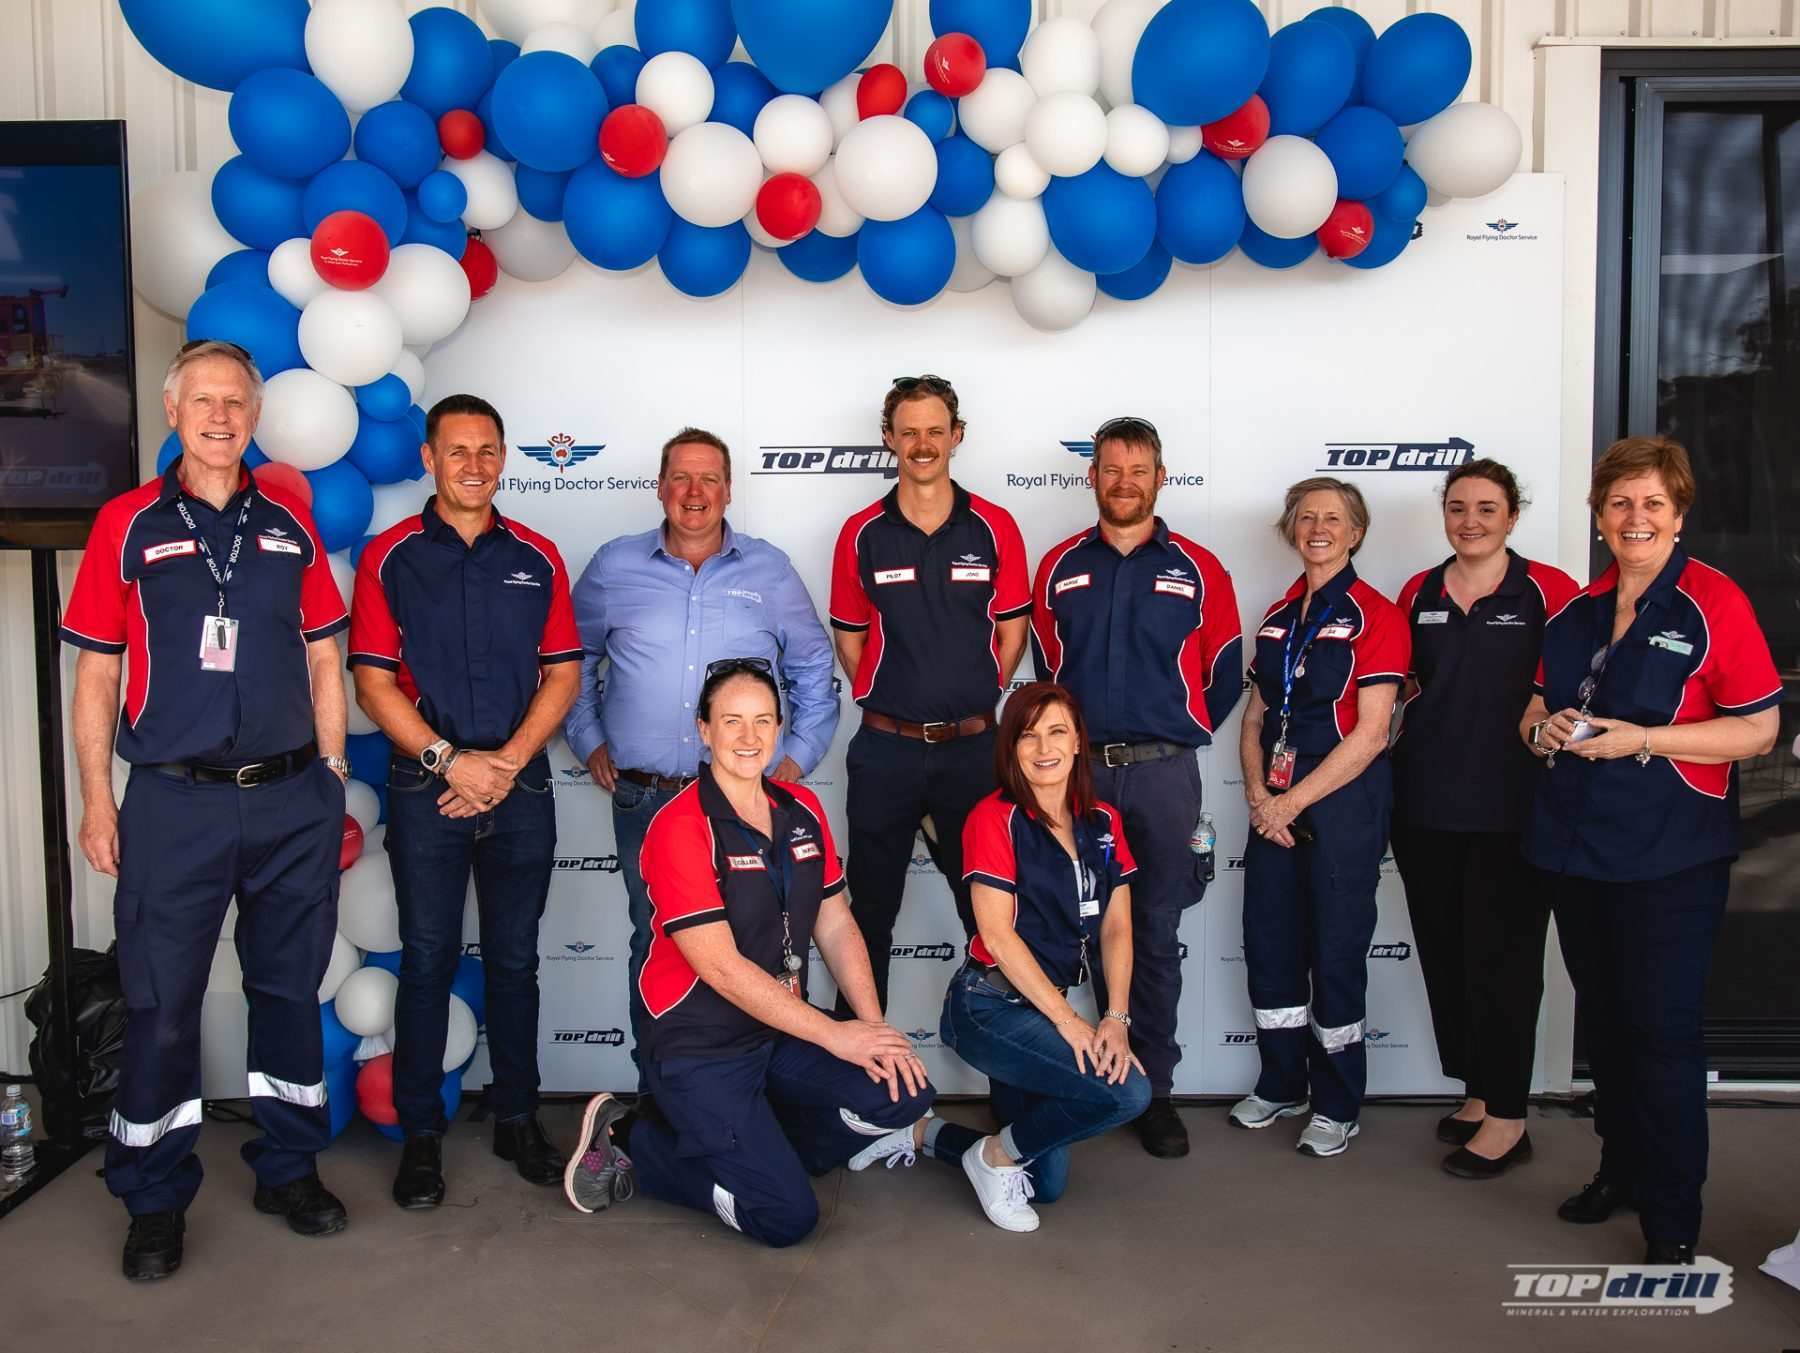 Royal Flying Doctors Service at Topdrill Kalgoorlie